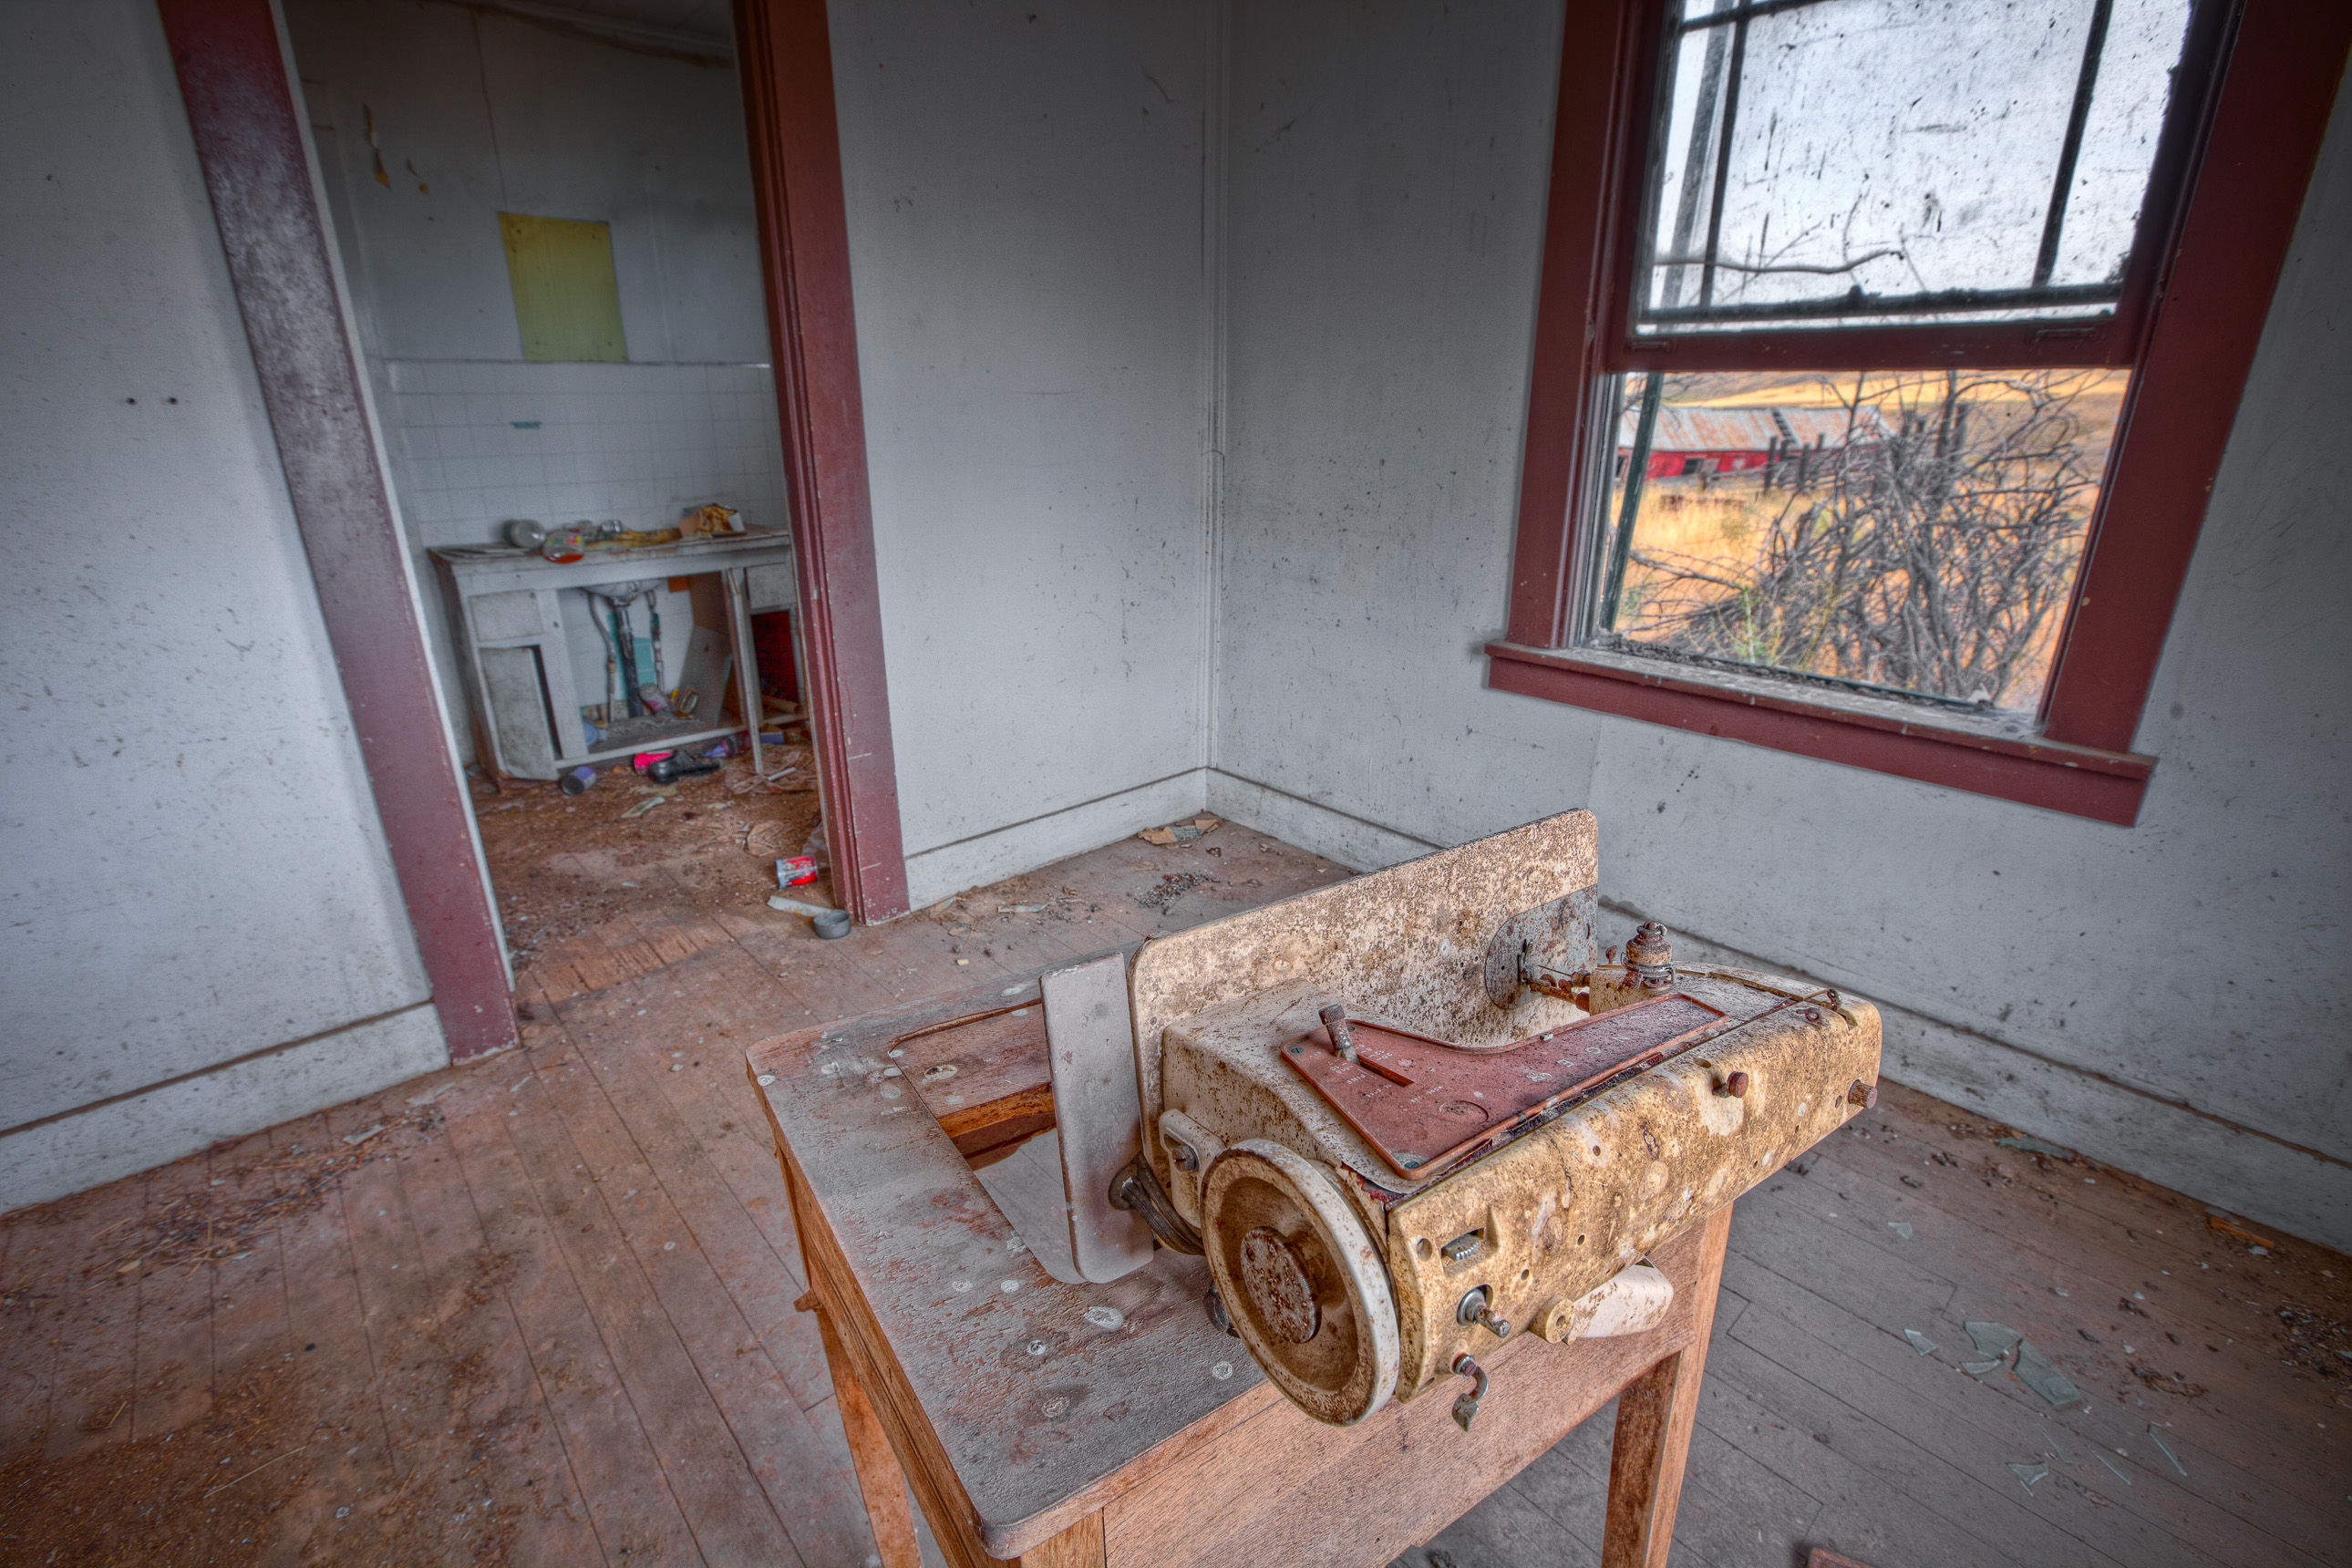 Sewing machine in an abandoned house